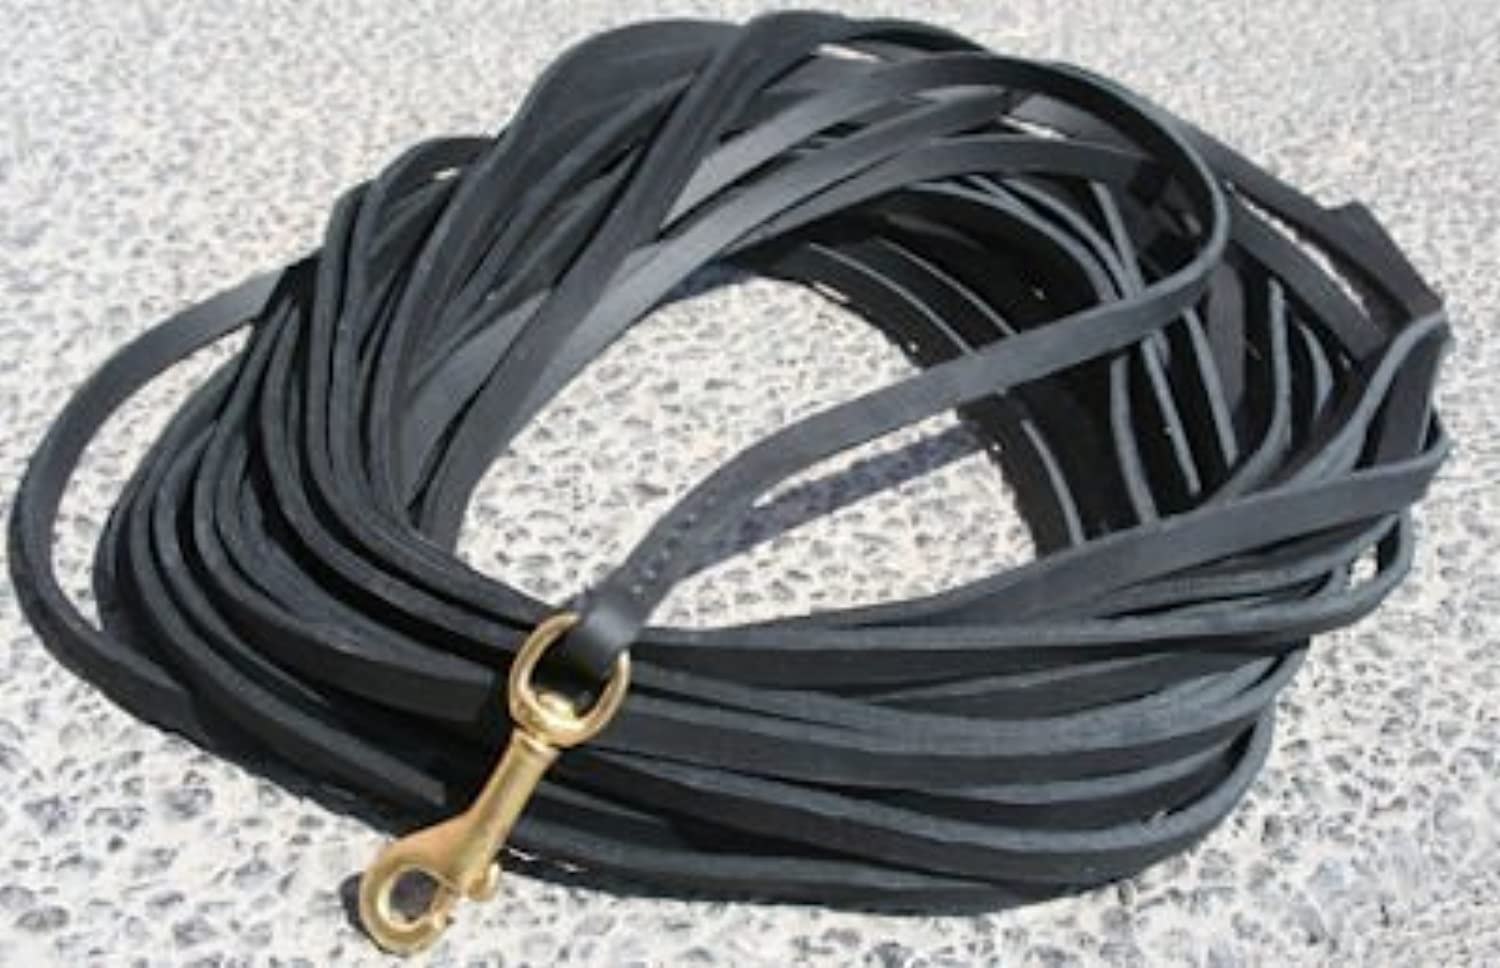 Dean and Tyler Stitched Track Dog Leash with Solid Brass Hardware, 20Feet by 3 8Inch, Black